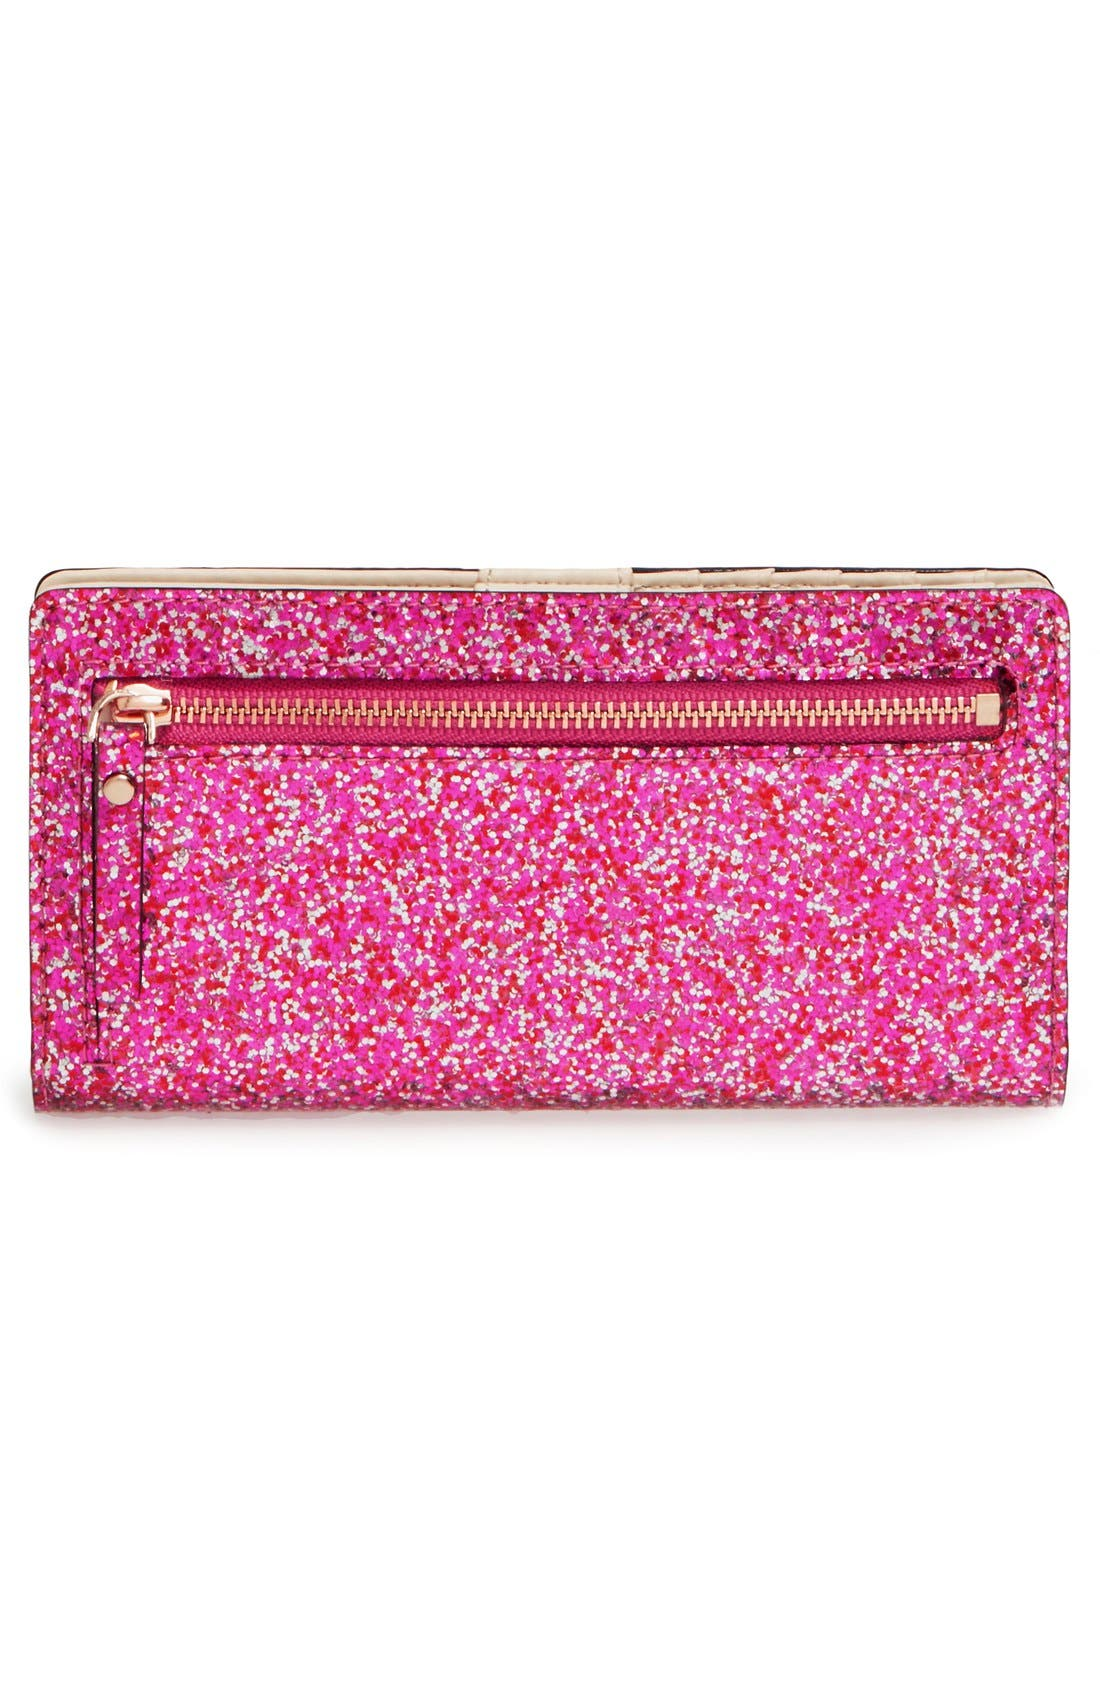 'glitter bug - stacy' snap wallet,                             Alternate thumbnail 5, color,                             600